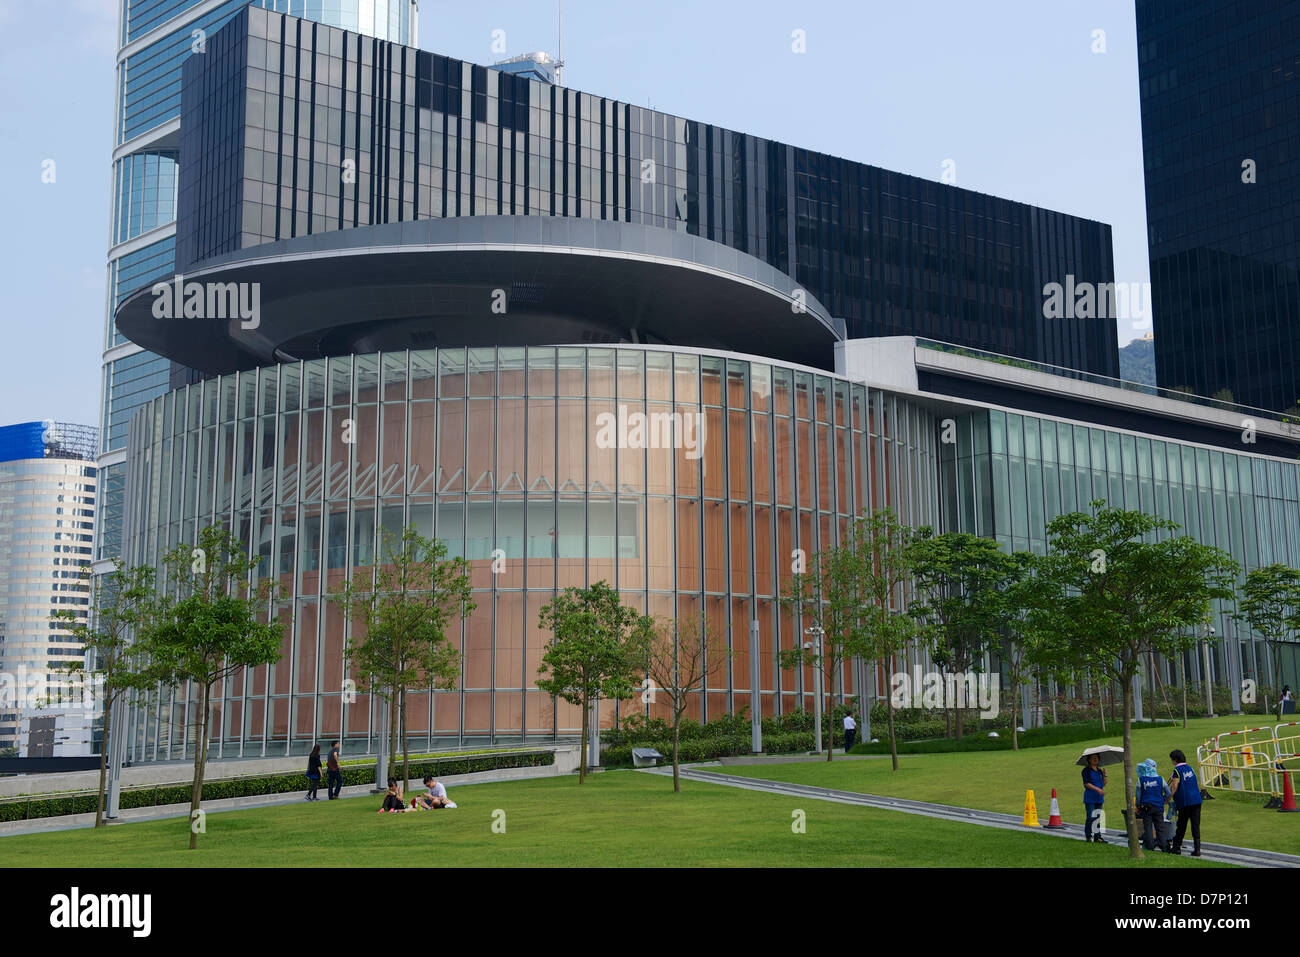 The new government offices in Tamar, Hong Kong - Stock Image